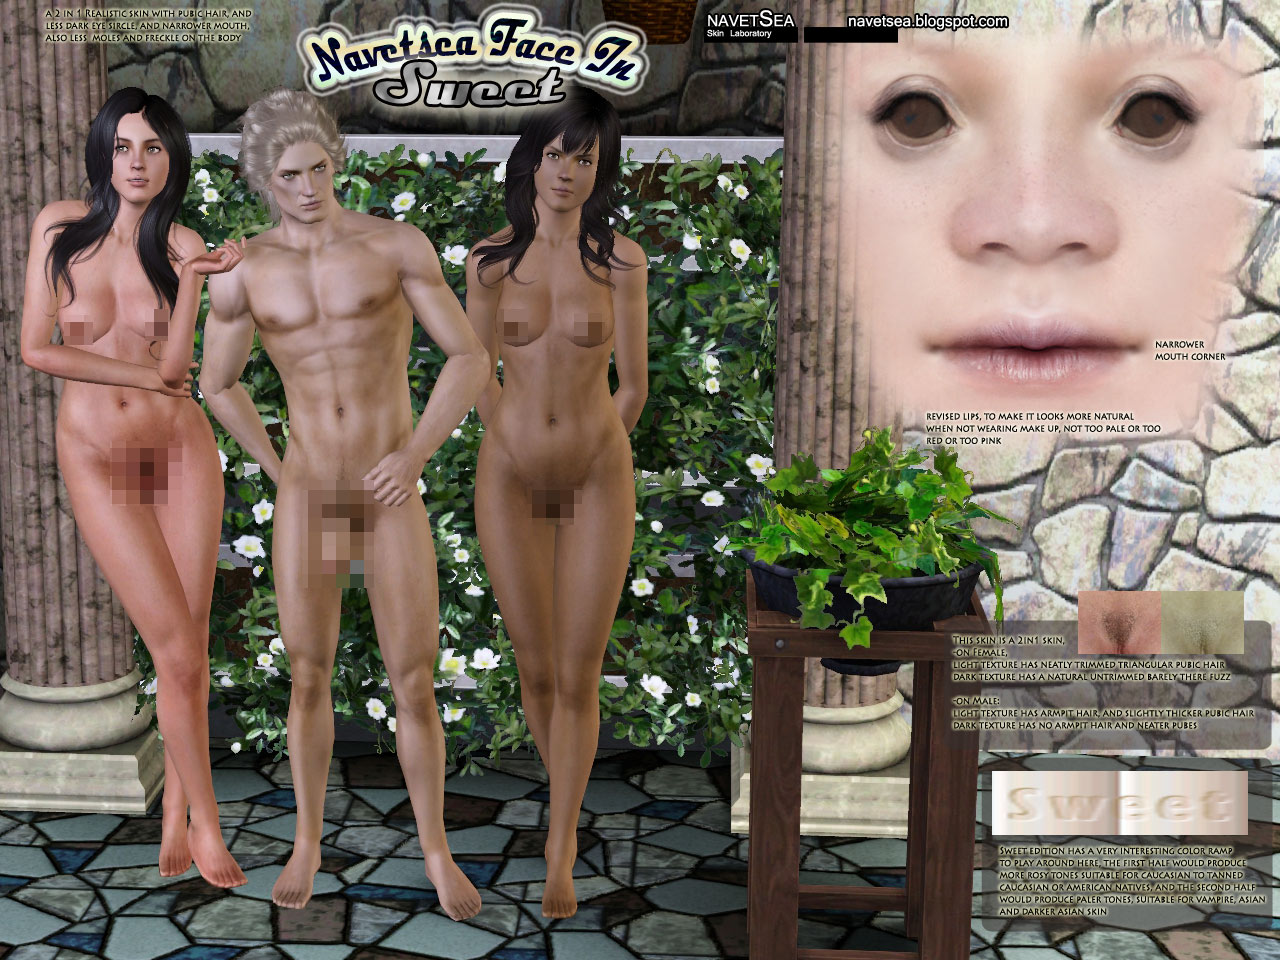 Wow nude npc hardcore photo